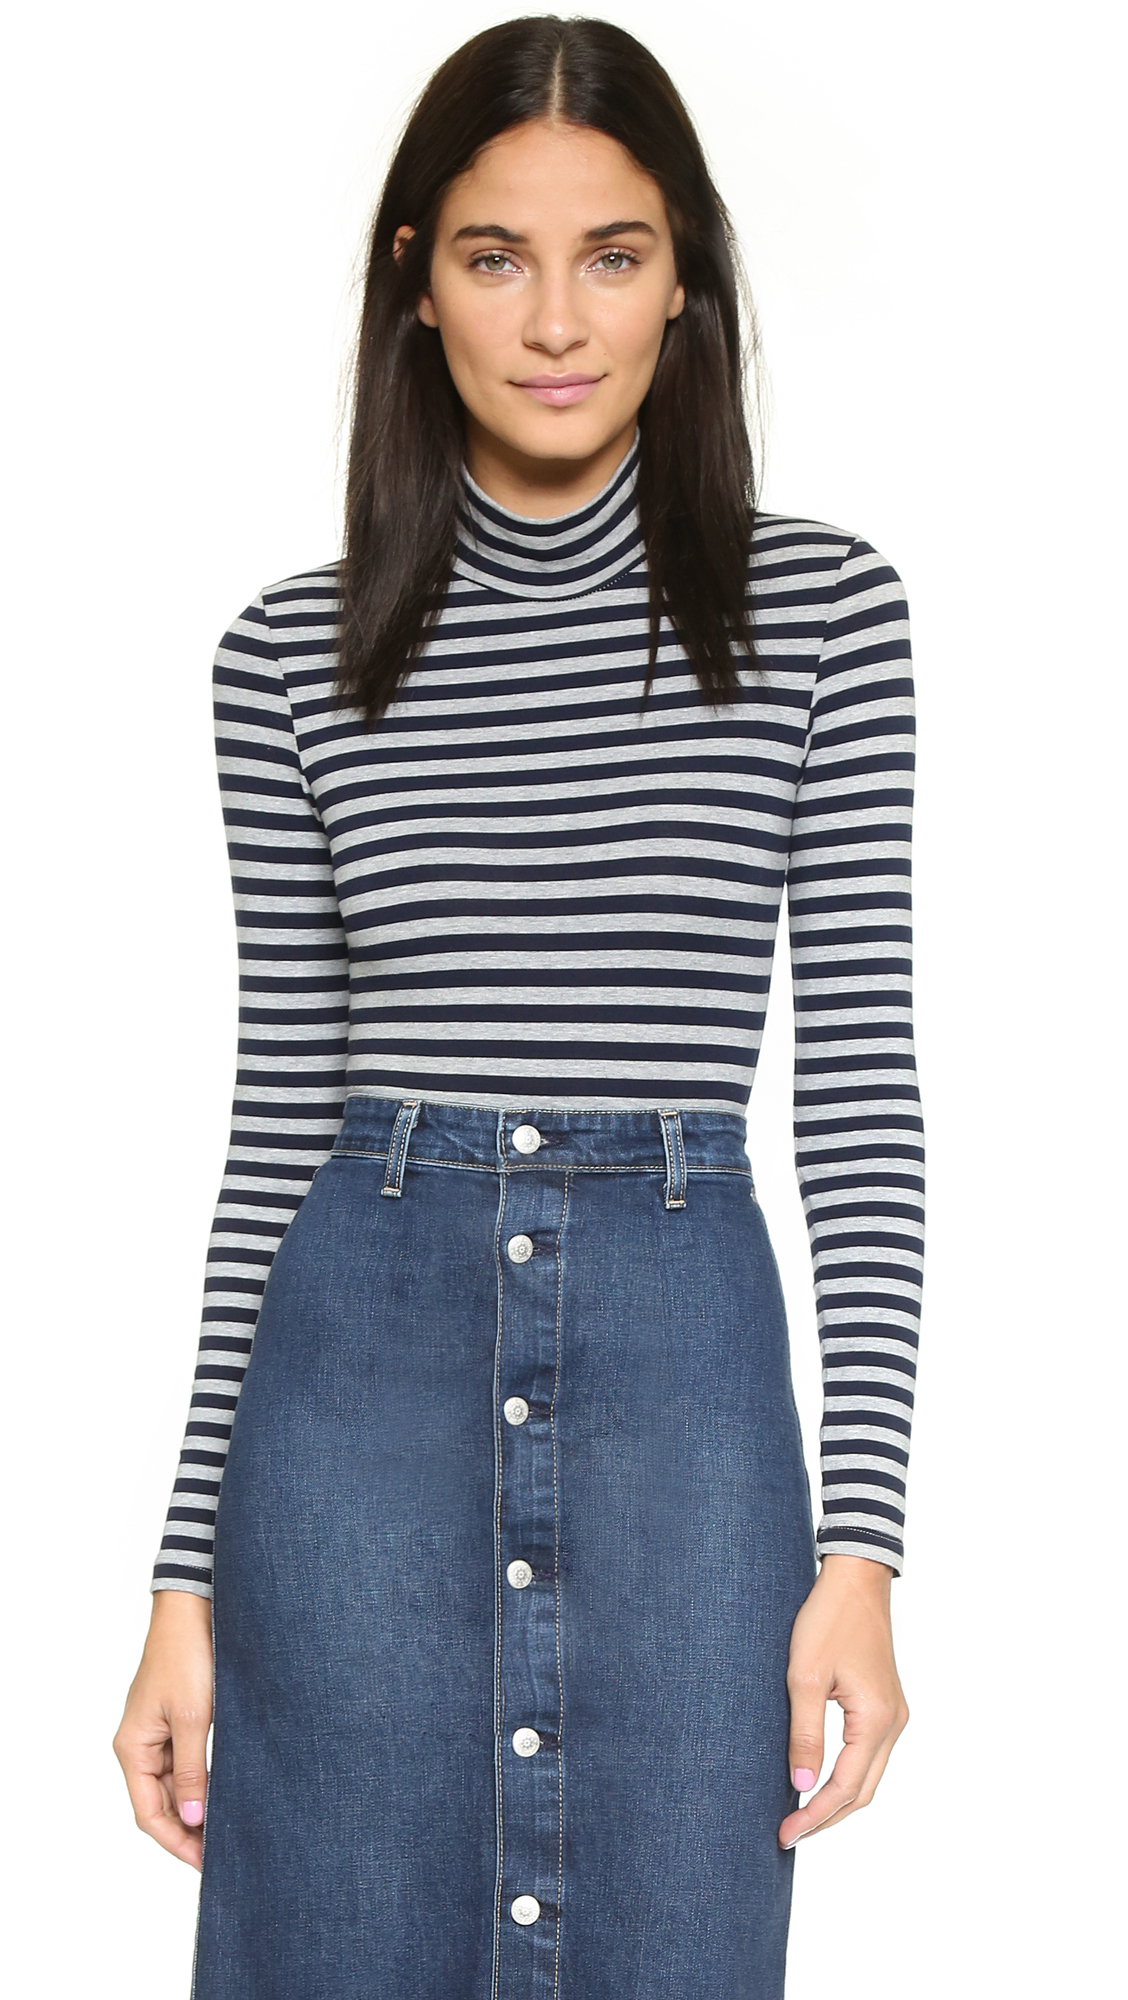 Capulet Long Sleeve Turtleneck Bodysuit - Navy/heather ...